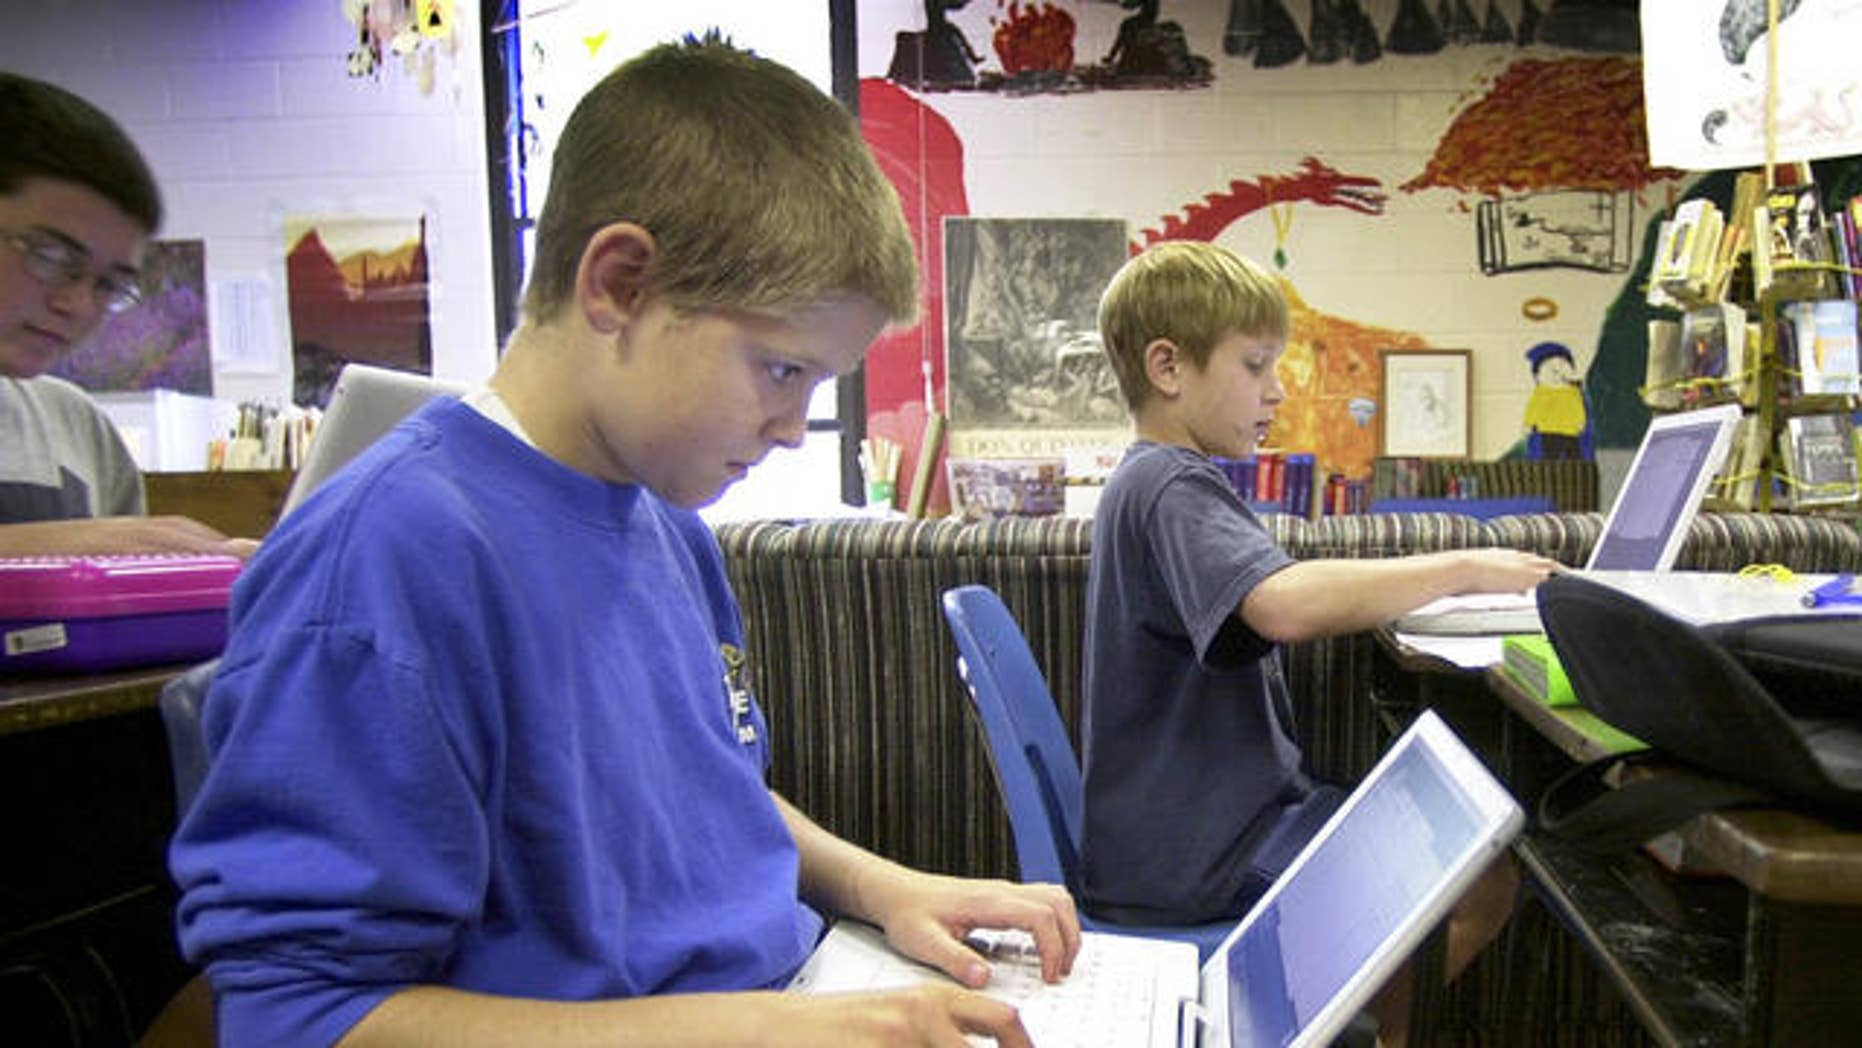 Many school districts around the country are finding that the new Common Core standards are bringing unforeseen costs, particularly with respect to new technology for children as young as 5.